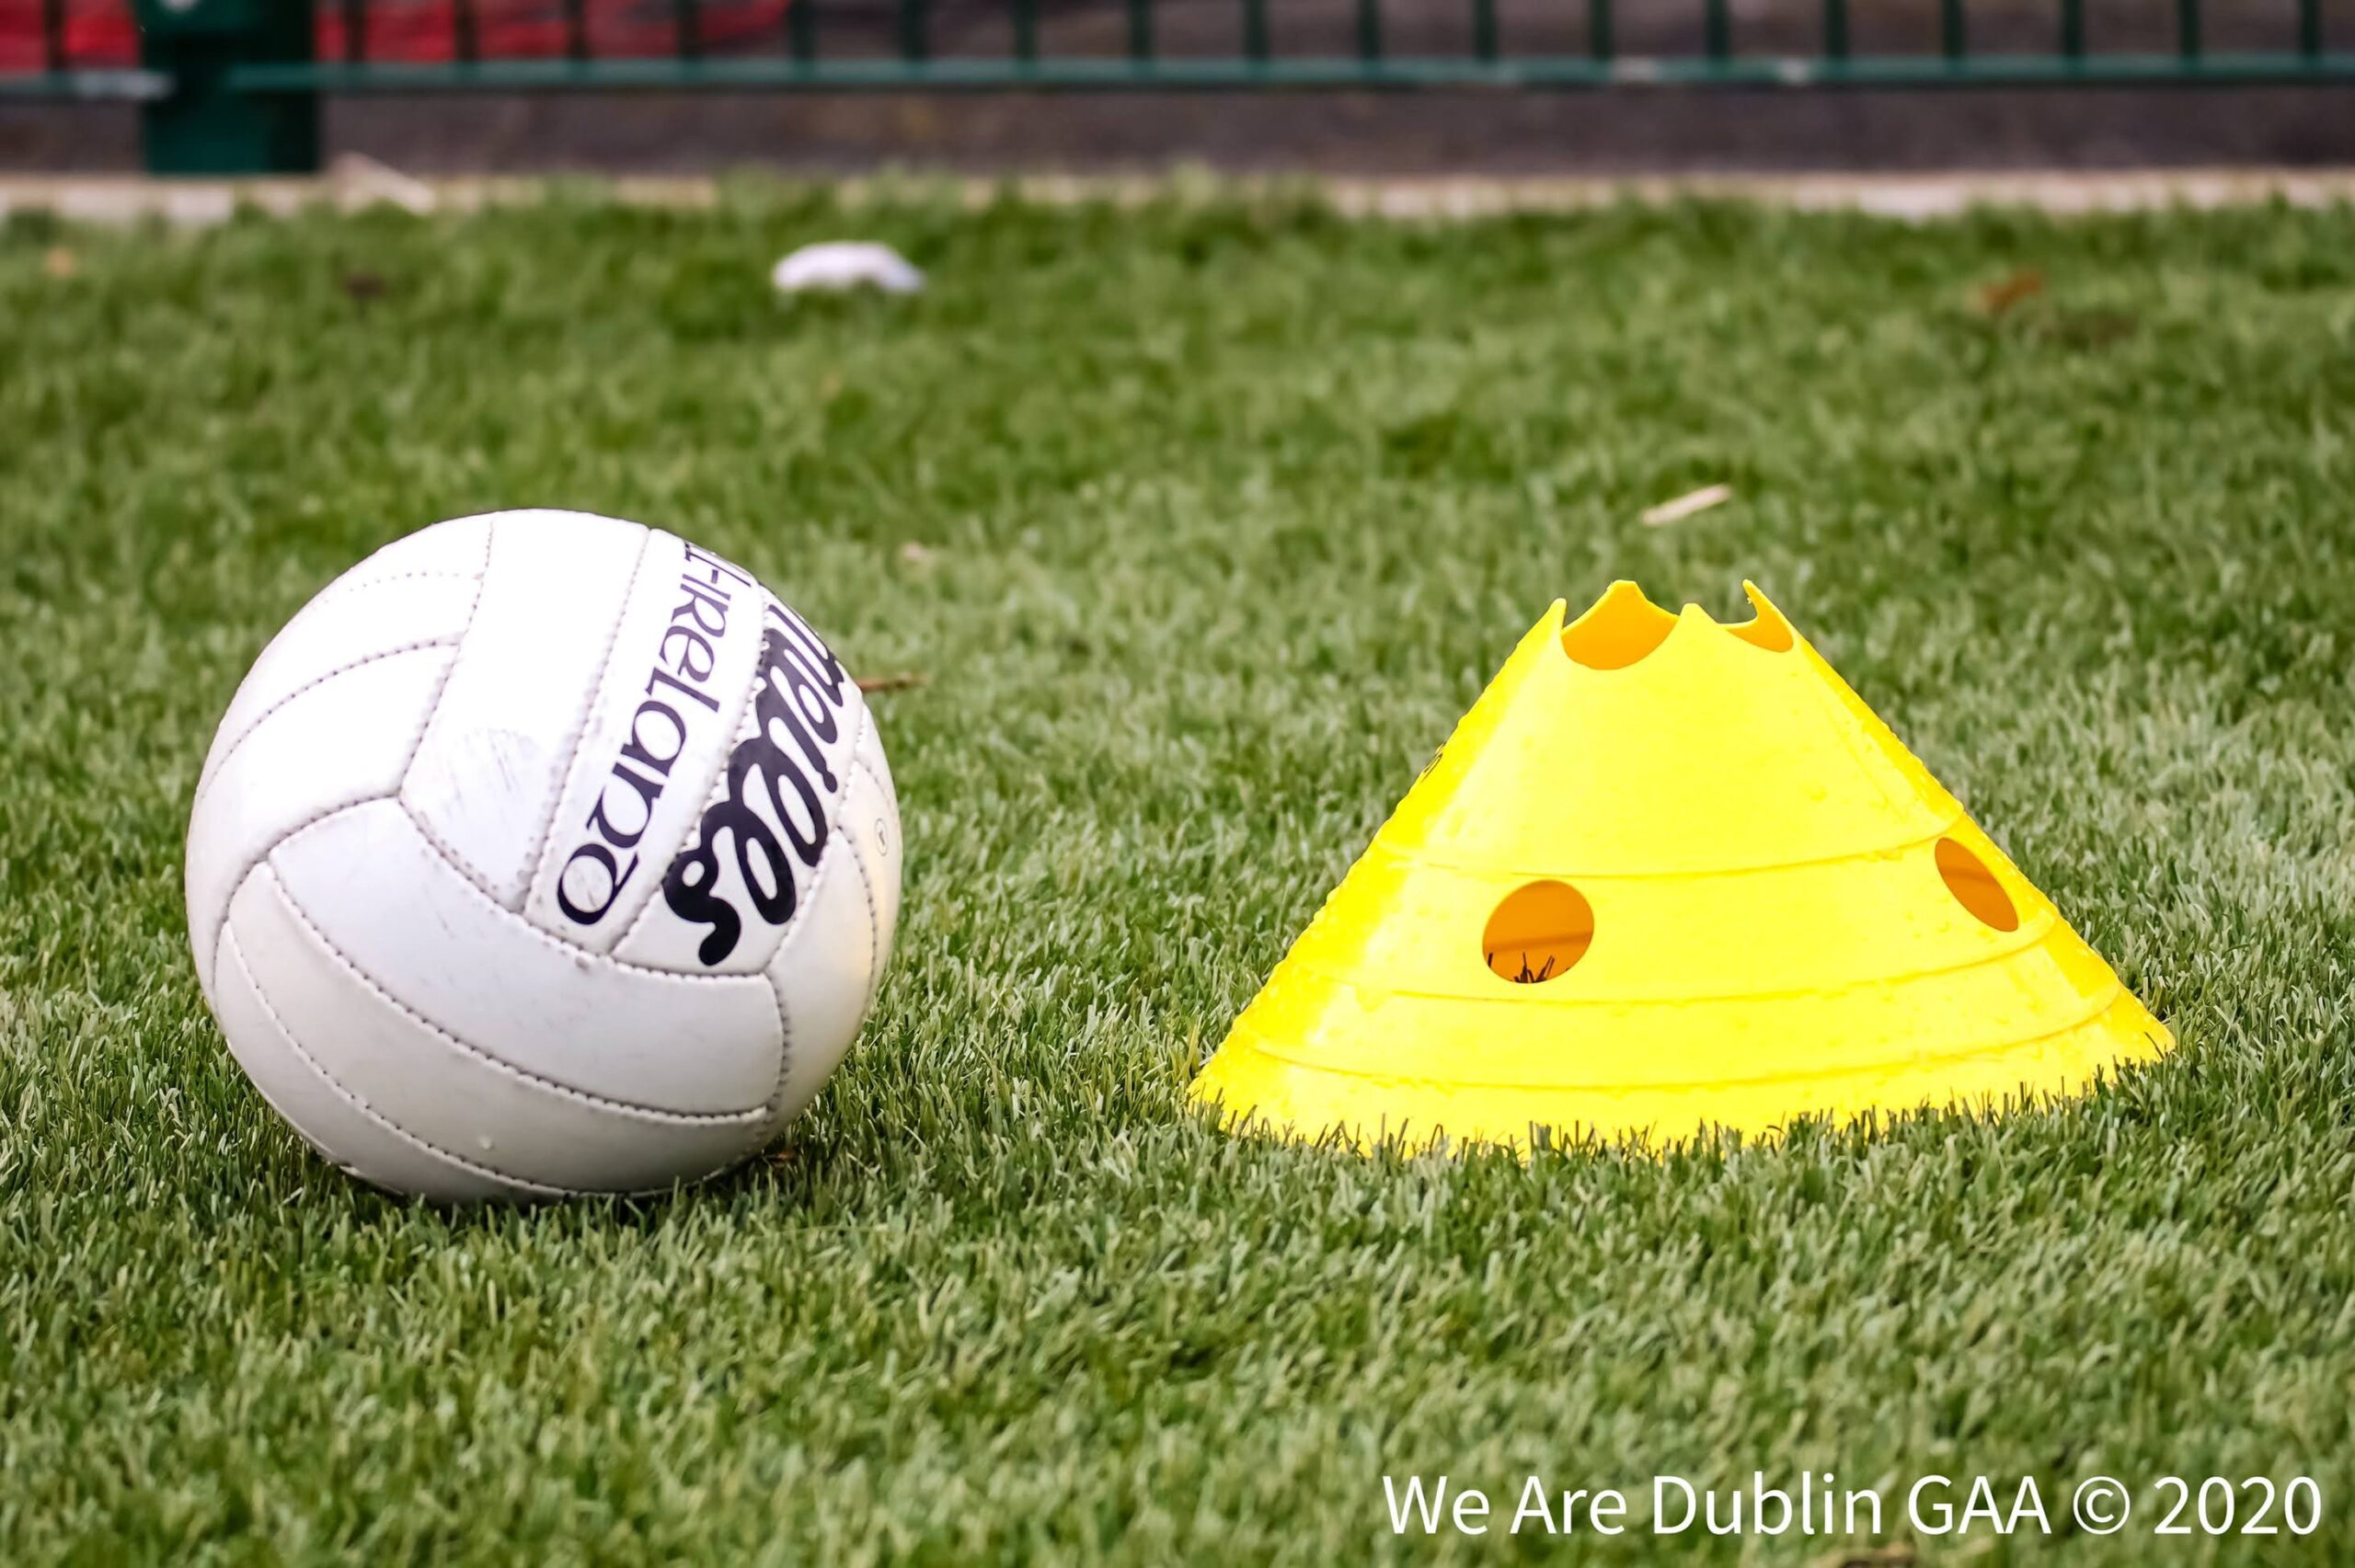 A ladies Gaelic football and cone on a pitch to signify the Dublin LGFA club championship fixtures that are taking place today.